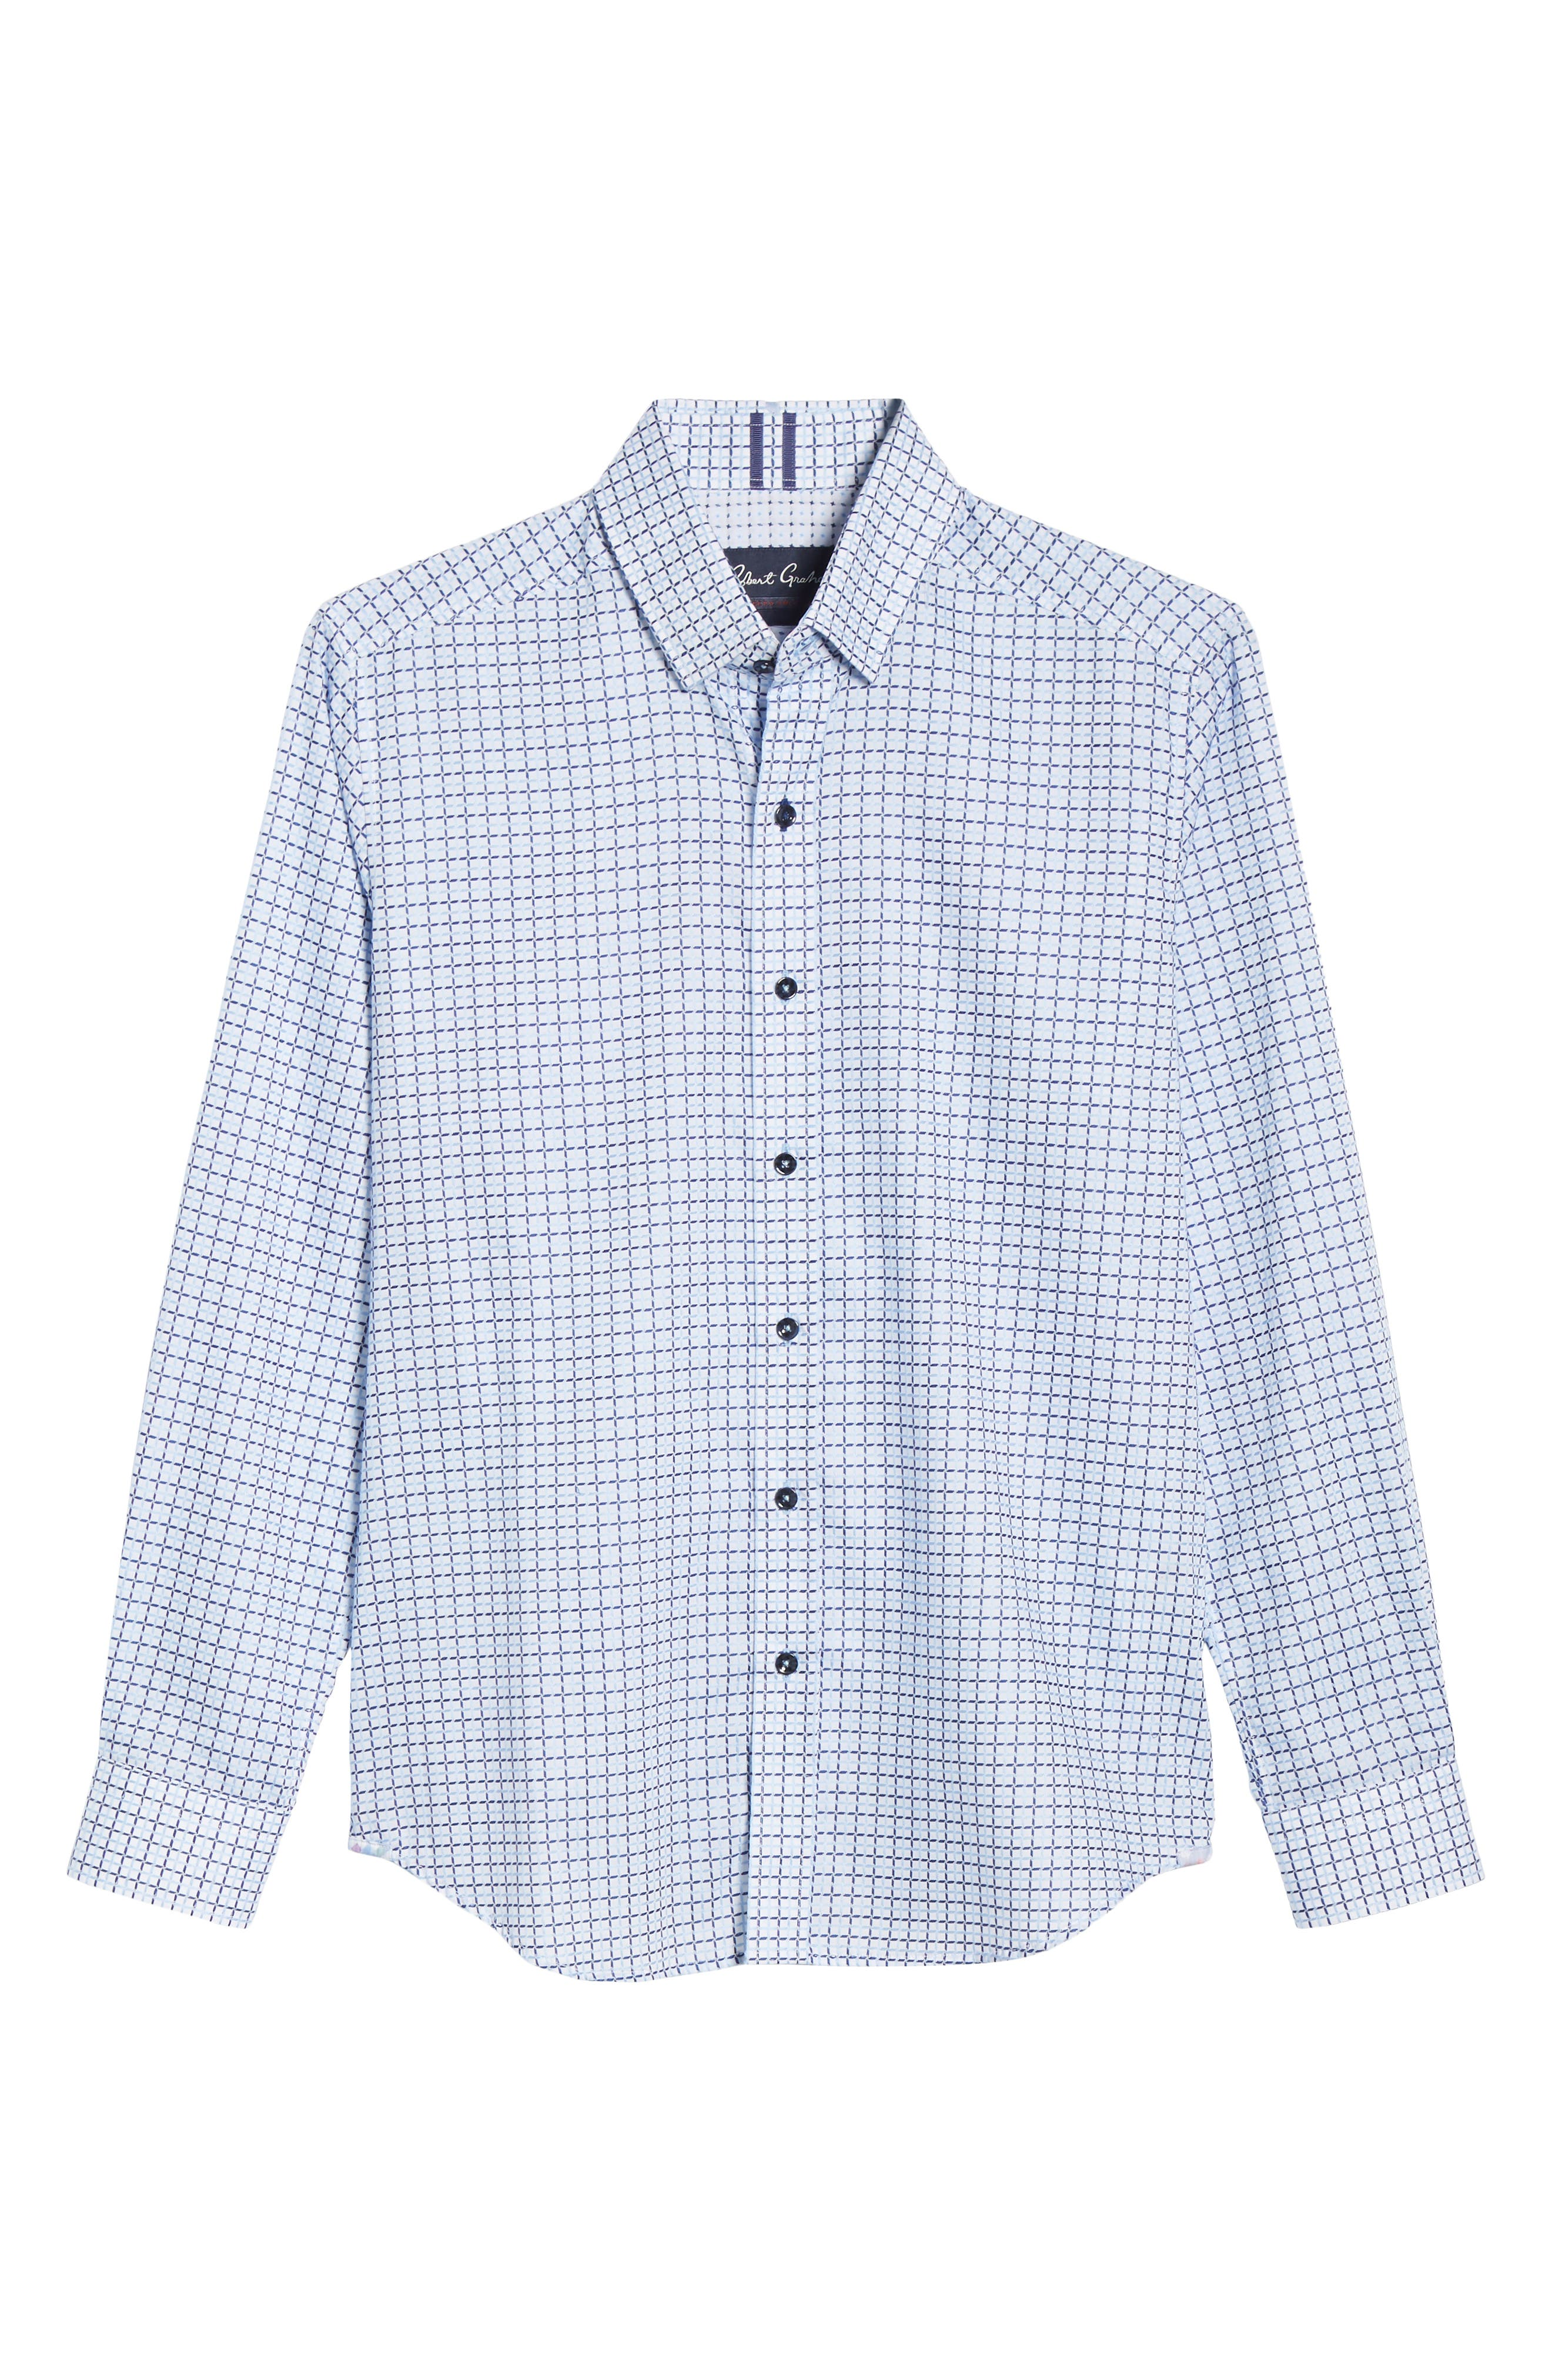 ROBERT GRAHAM,                             Axton Tailored Fit Check Sport Shirt,                             Alternate thumbnail 5, color,                             BLUE